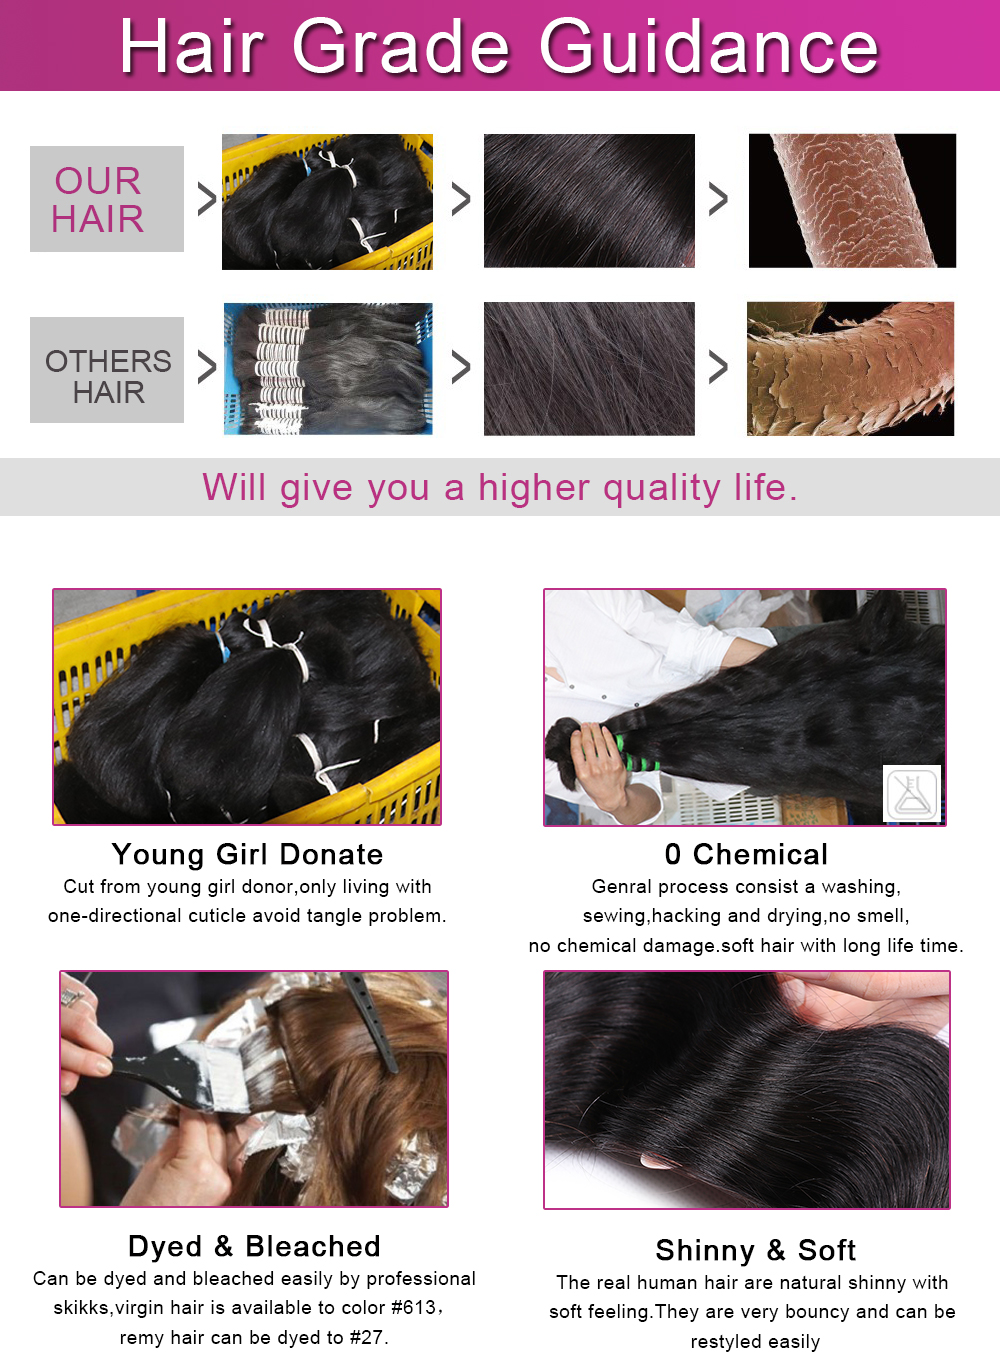 UEENLY Loose Wave Bundles With Closure Remy Human Hair Bundles With Closure Brazilian Hair Wave 3 Bundles With 4*4 Closure